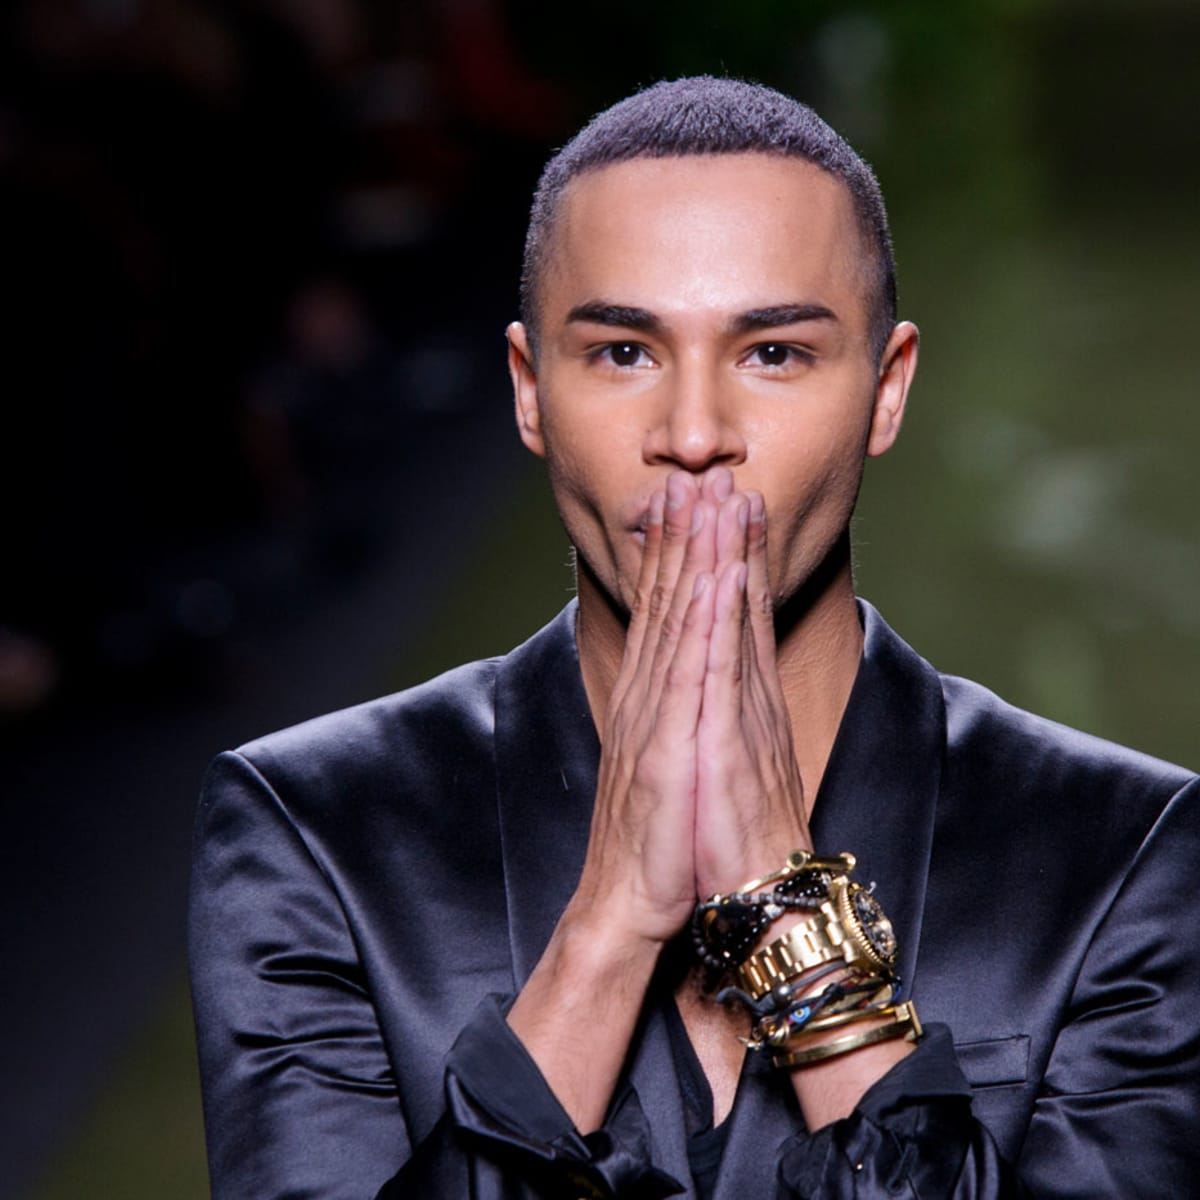 Olivier Rousteing Opens Up About Racial Discrimination, Social Media Profitability and Launching His Own Line - Fashionista